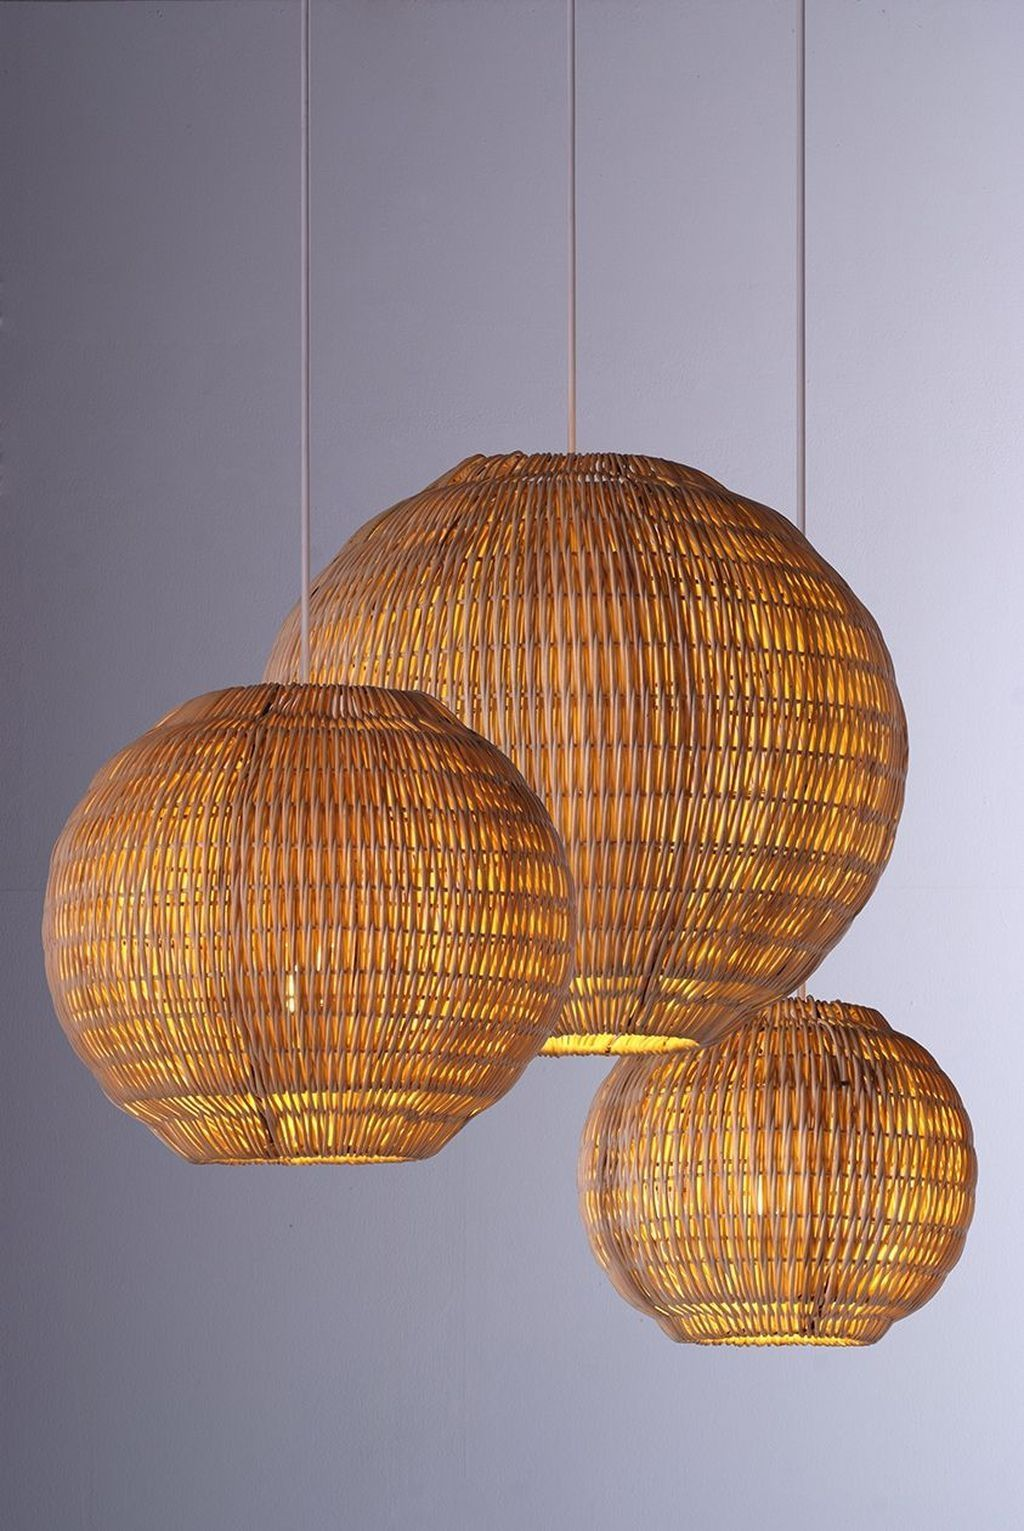 30 Adorable Hanging Lamp Designs Ideas From Rattan In 2020